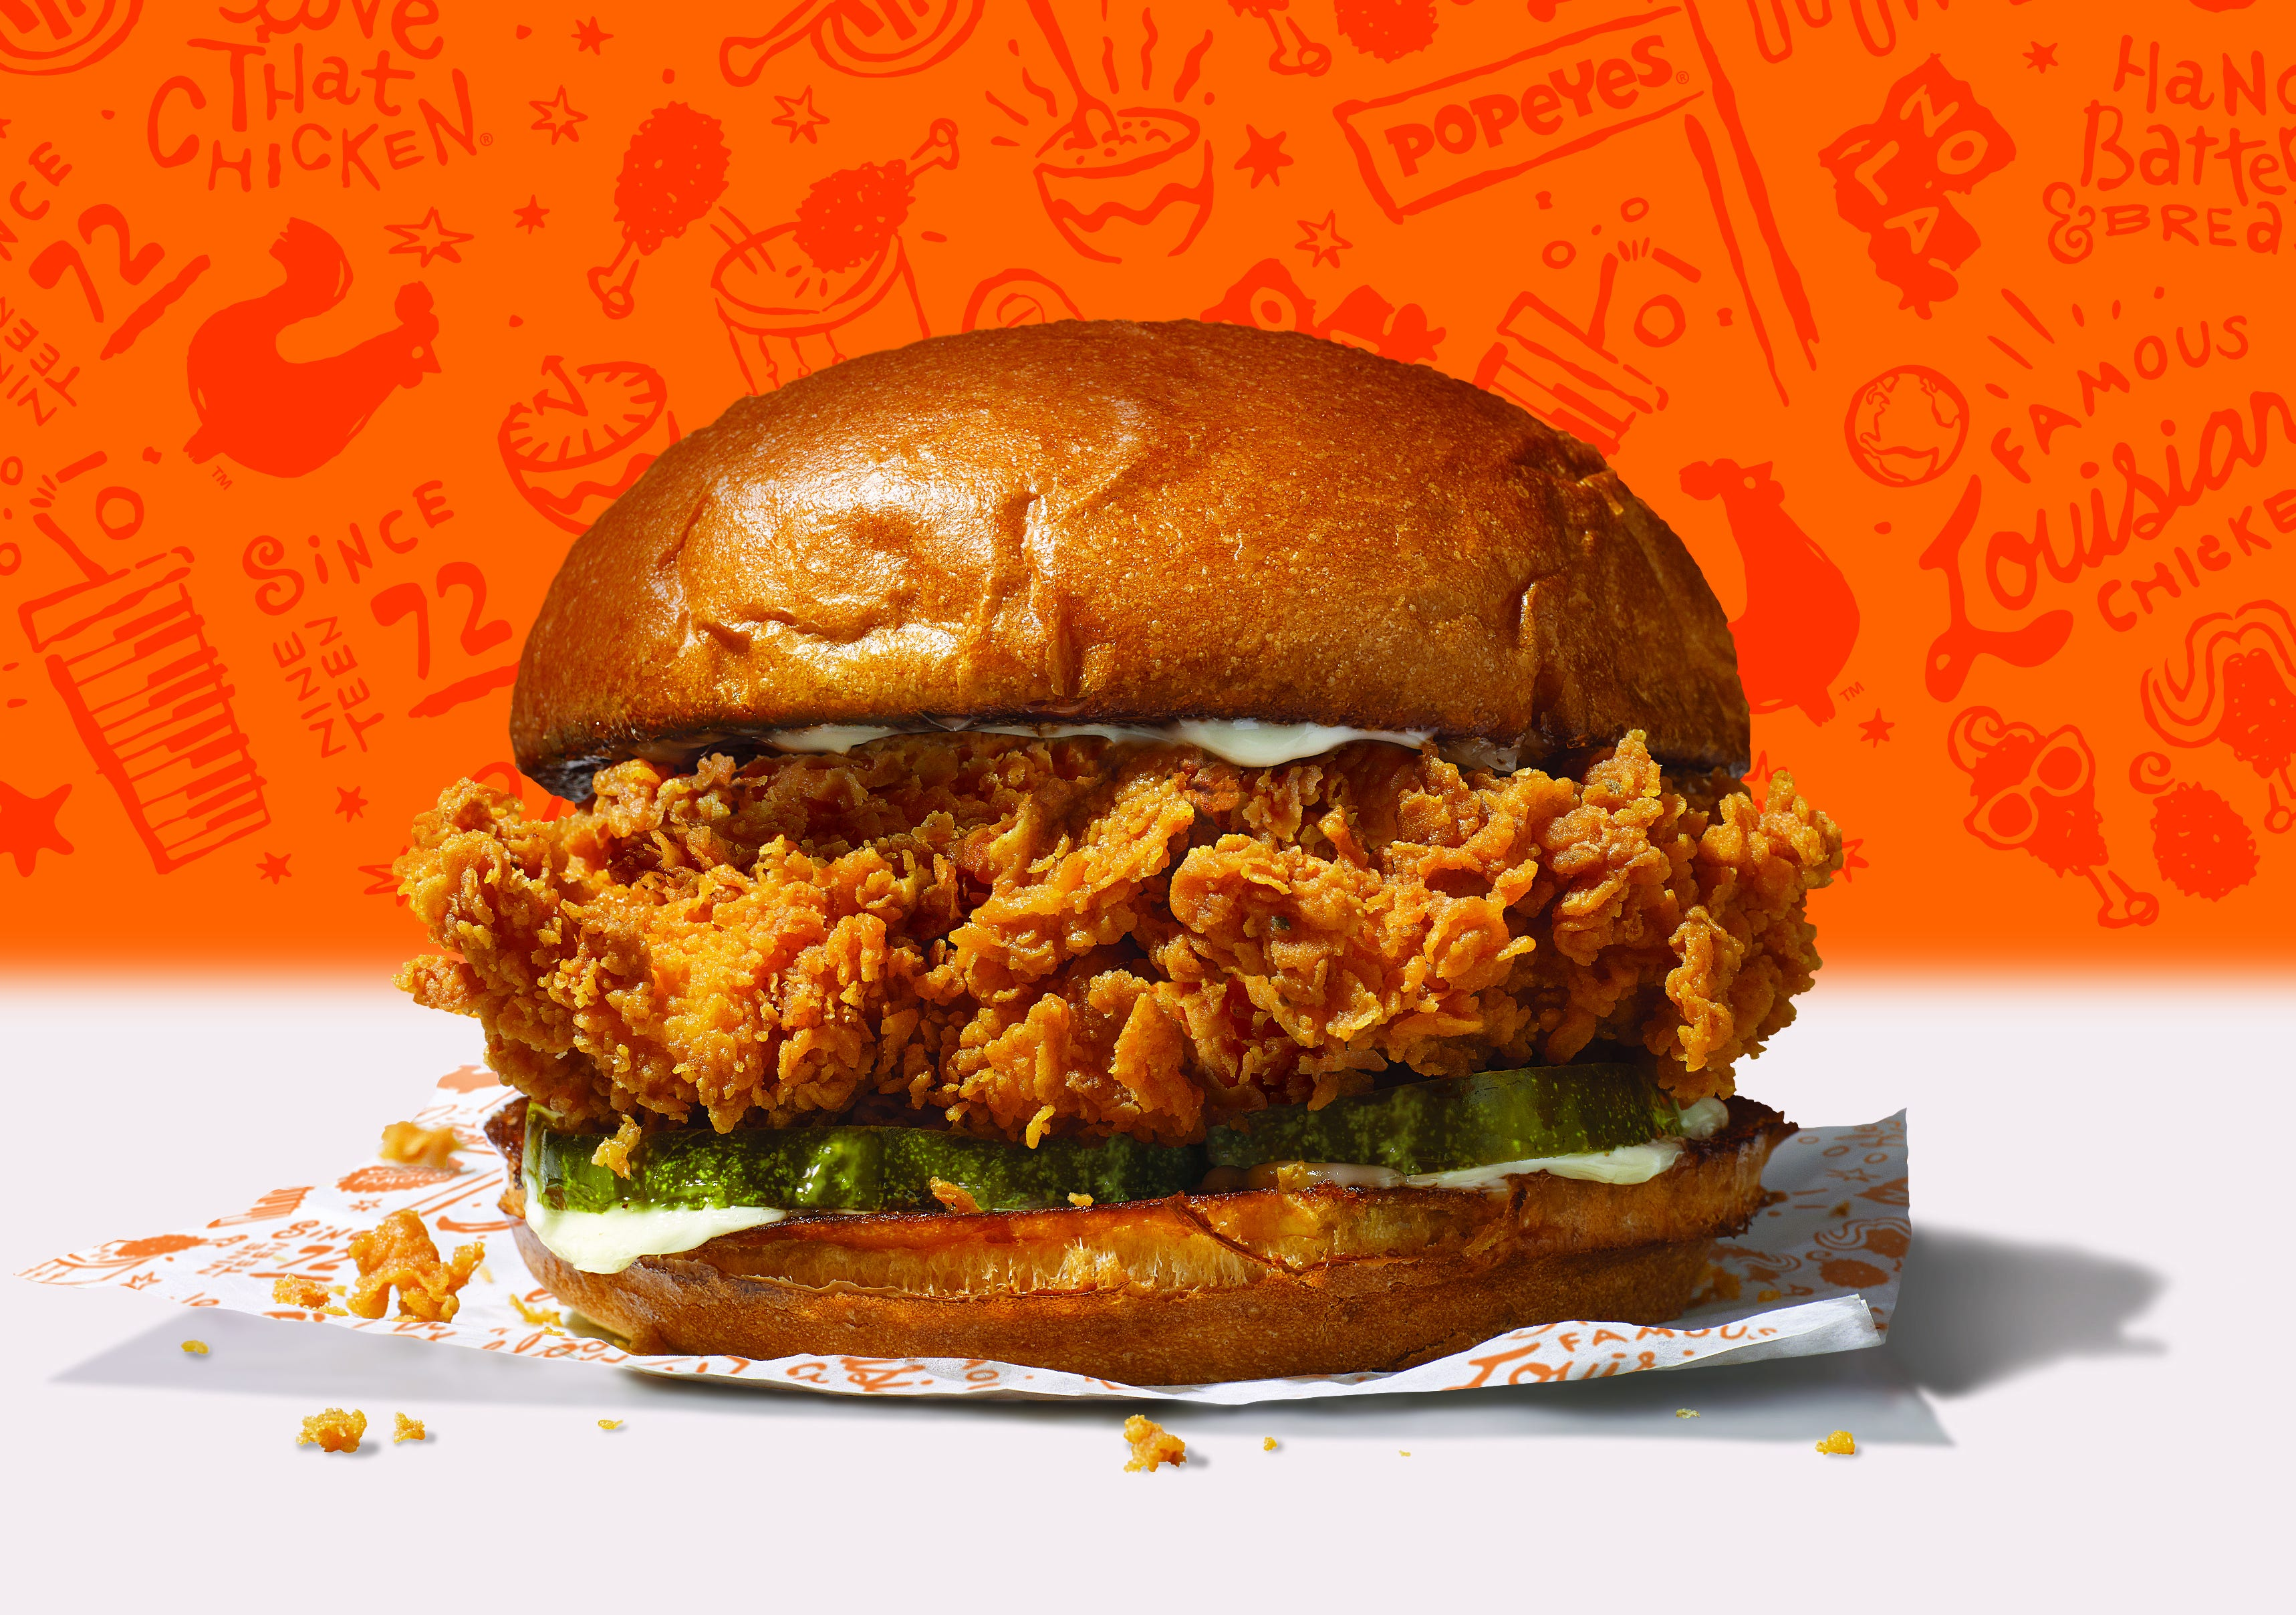 Who has the best chicken sandwich? Popeyes Chick-fil-A and Wendy&apos s are